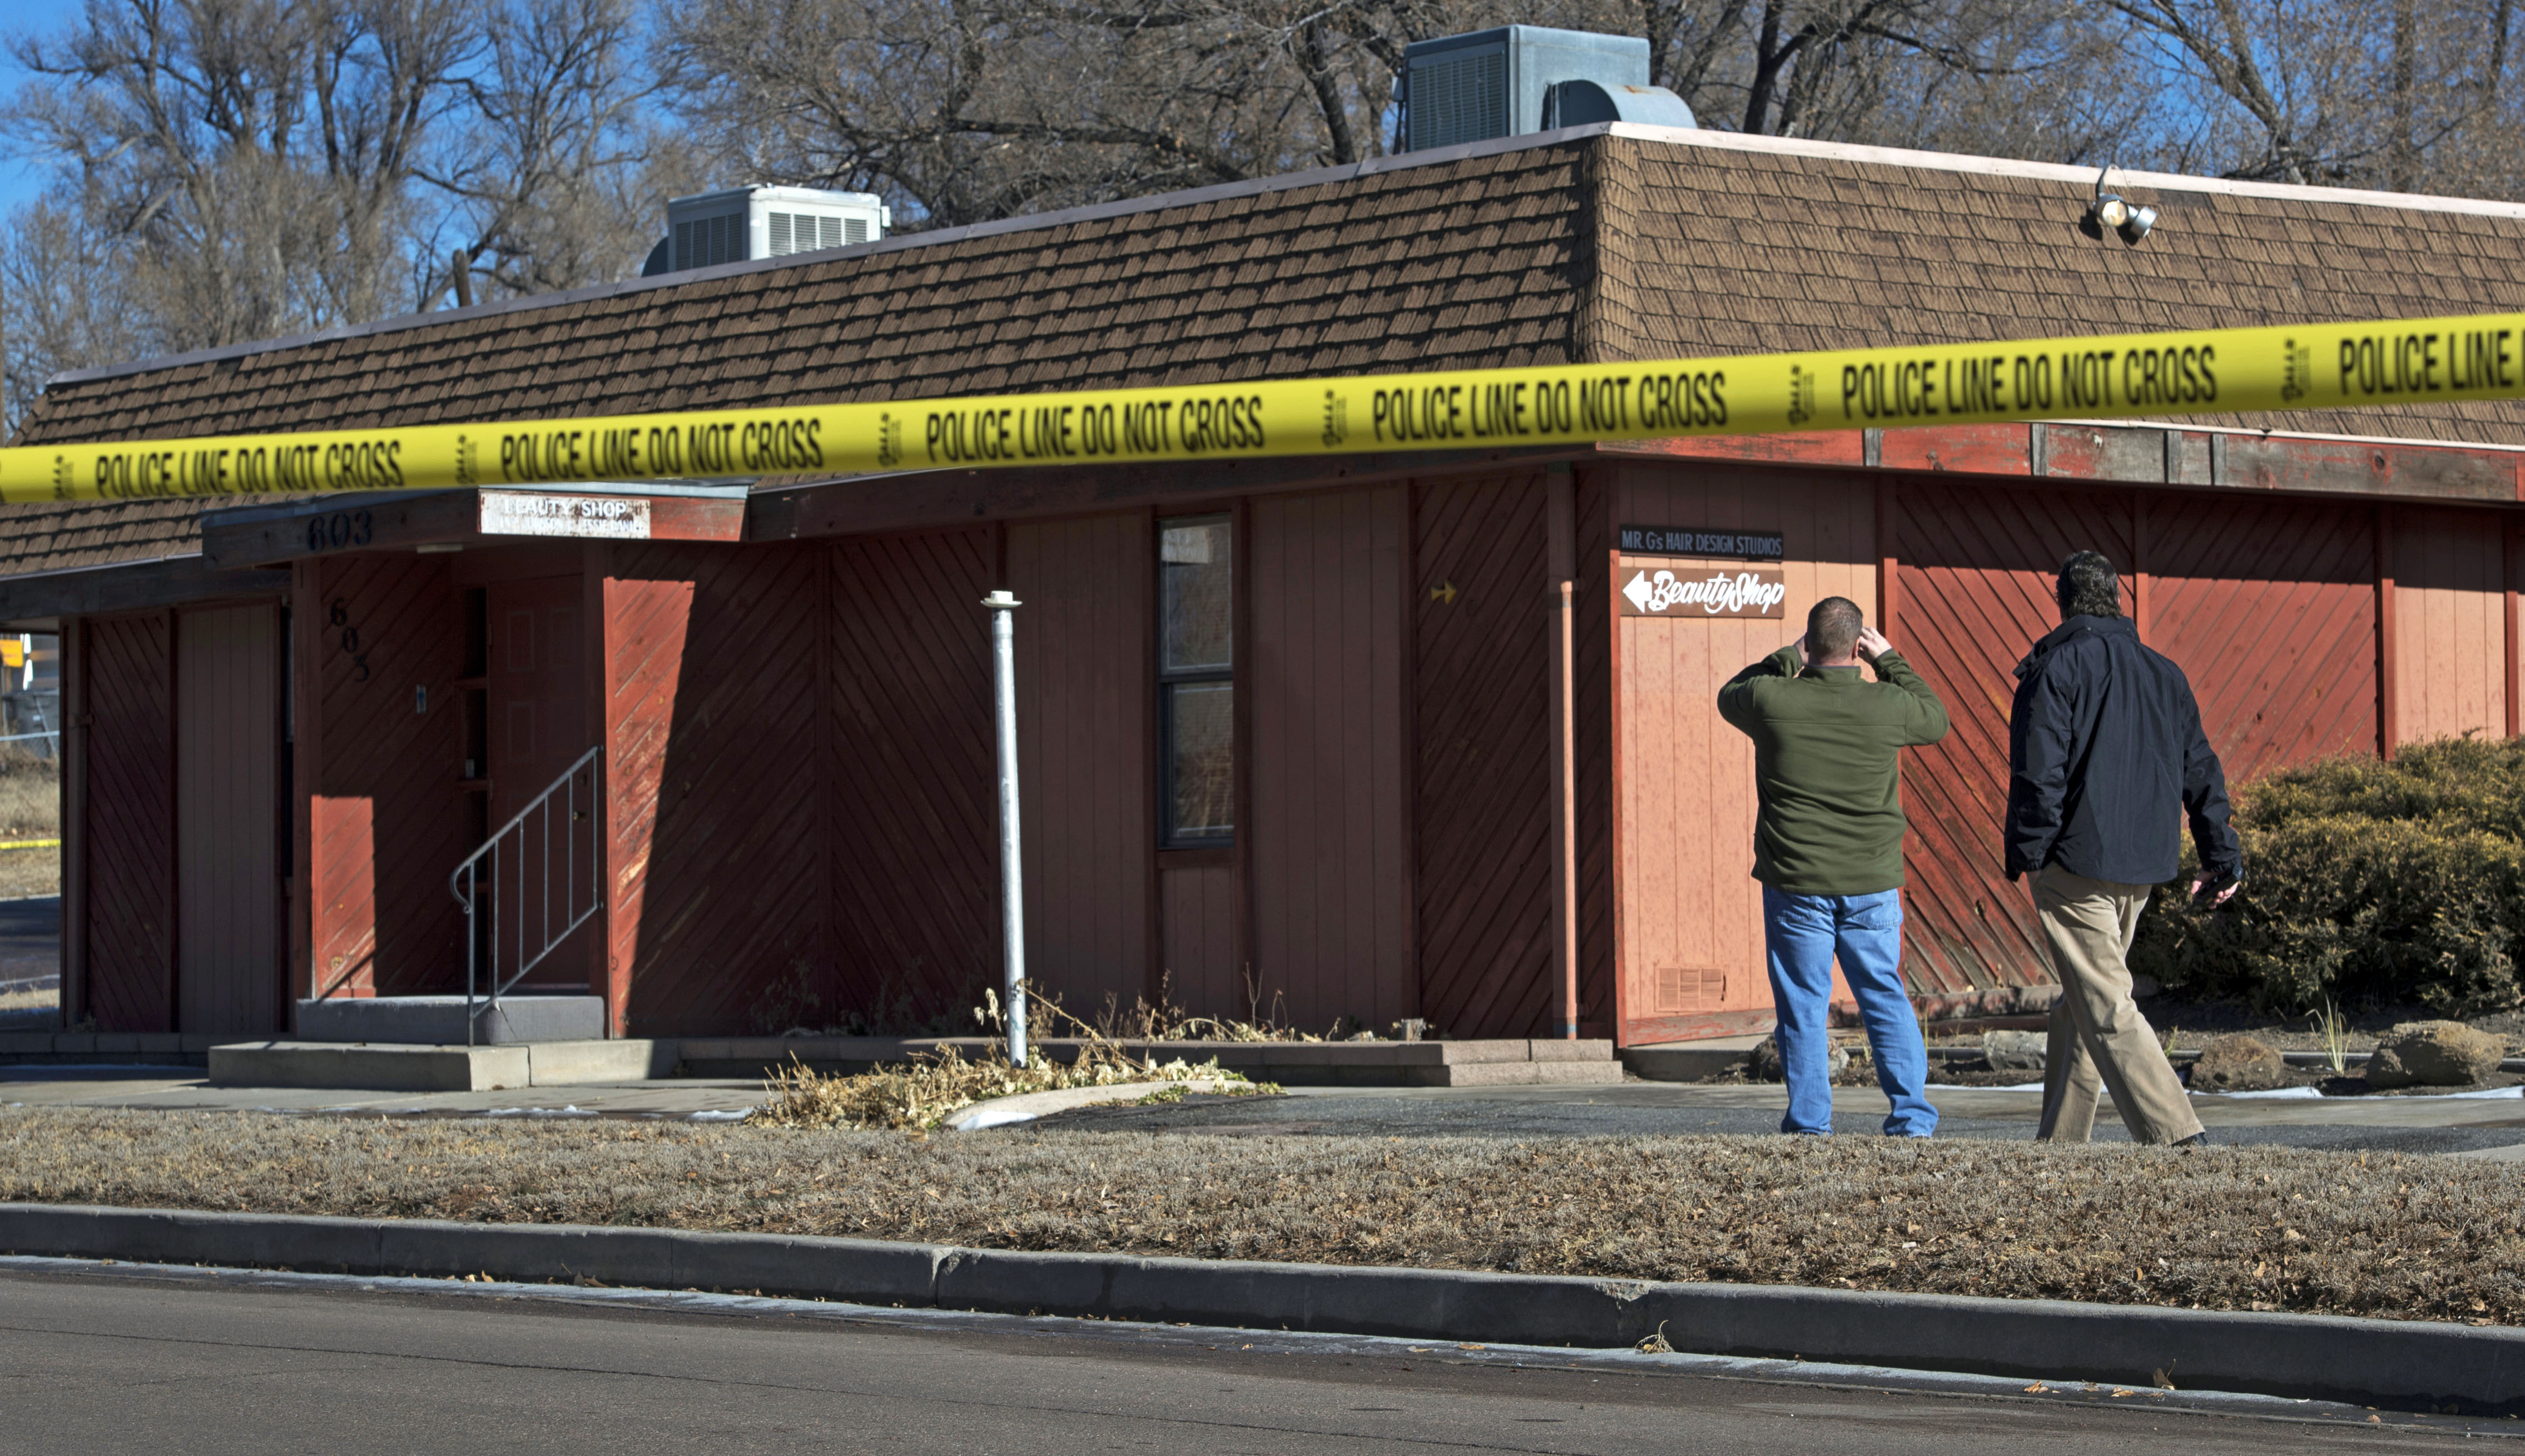 FILE - In this Jan. 6, 2015 file photo, Colorado Springs, Colo., police officers investigate the scene of an explosion at a building in Colorado Springs that houses a barber shop and the Colorado Springs chapter of the NAACP. (AP Photo/The Colorado Springs Gazette, Christian Murdock, File